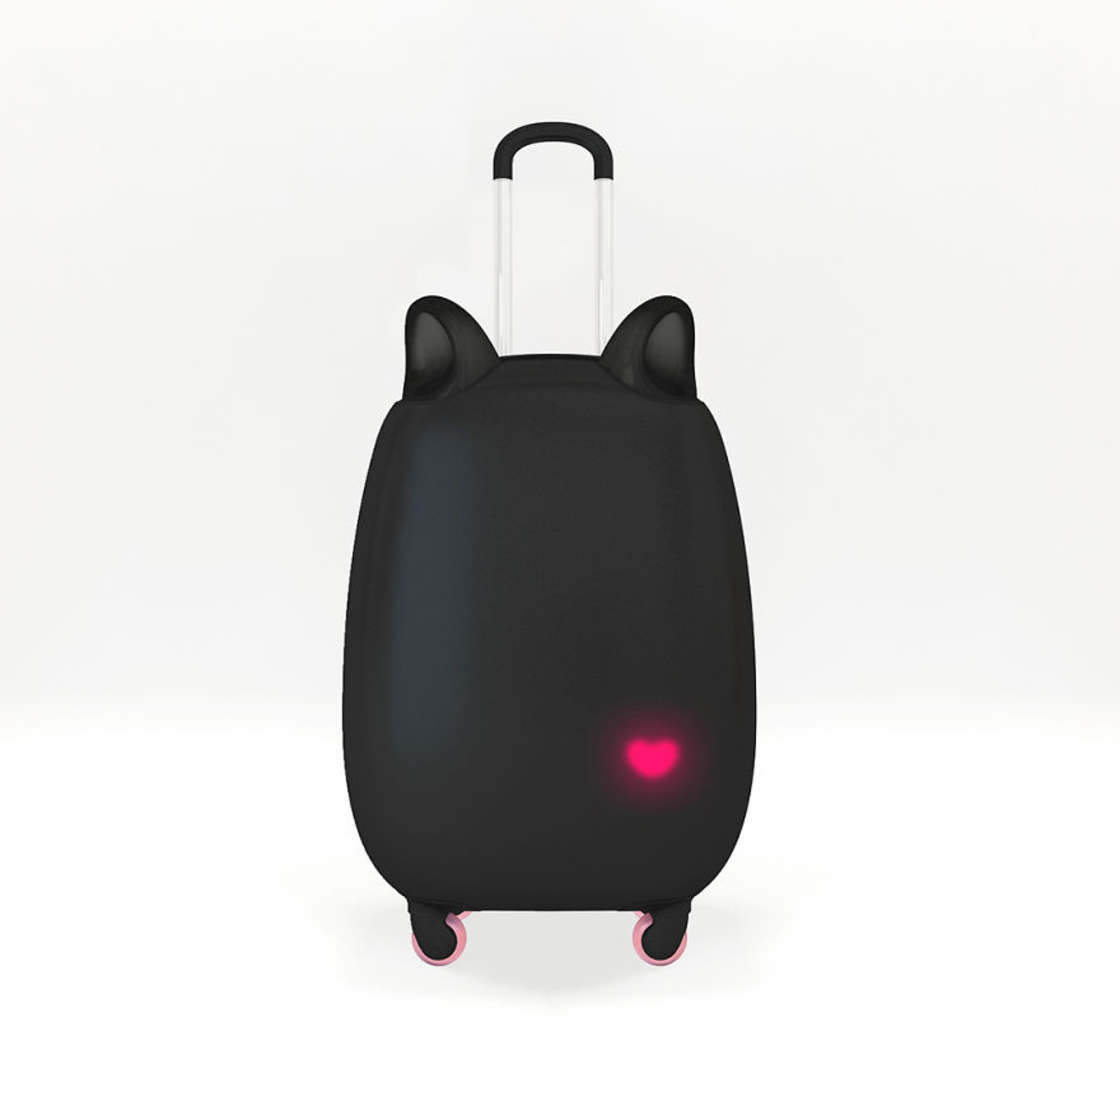 Cat Suitcase - The most adorable suitcase has mobile cat ears